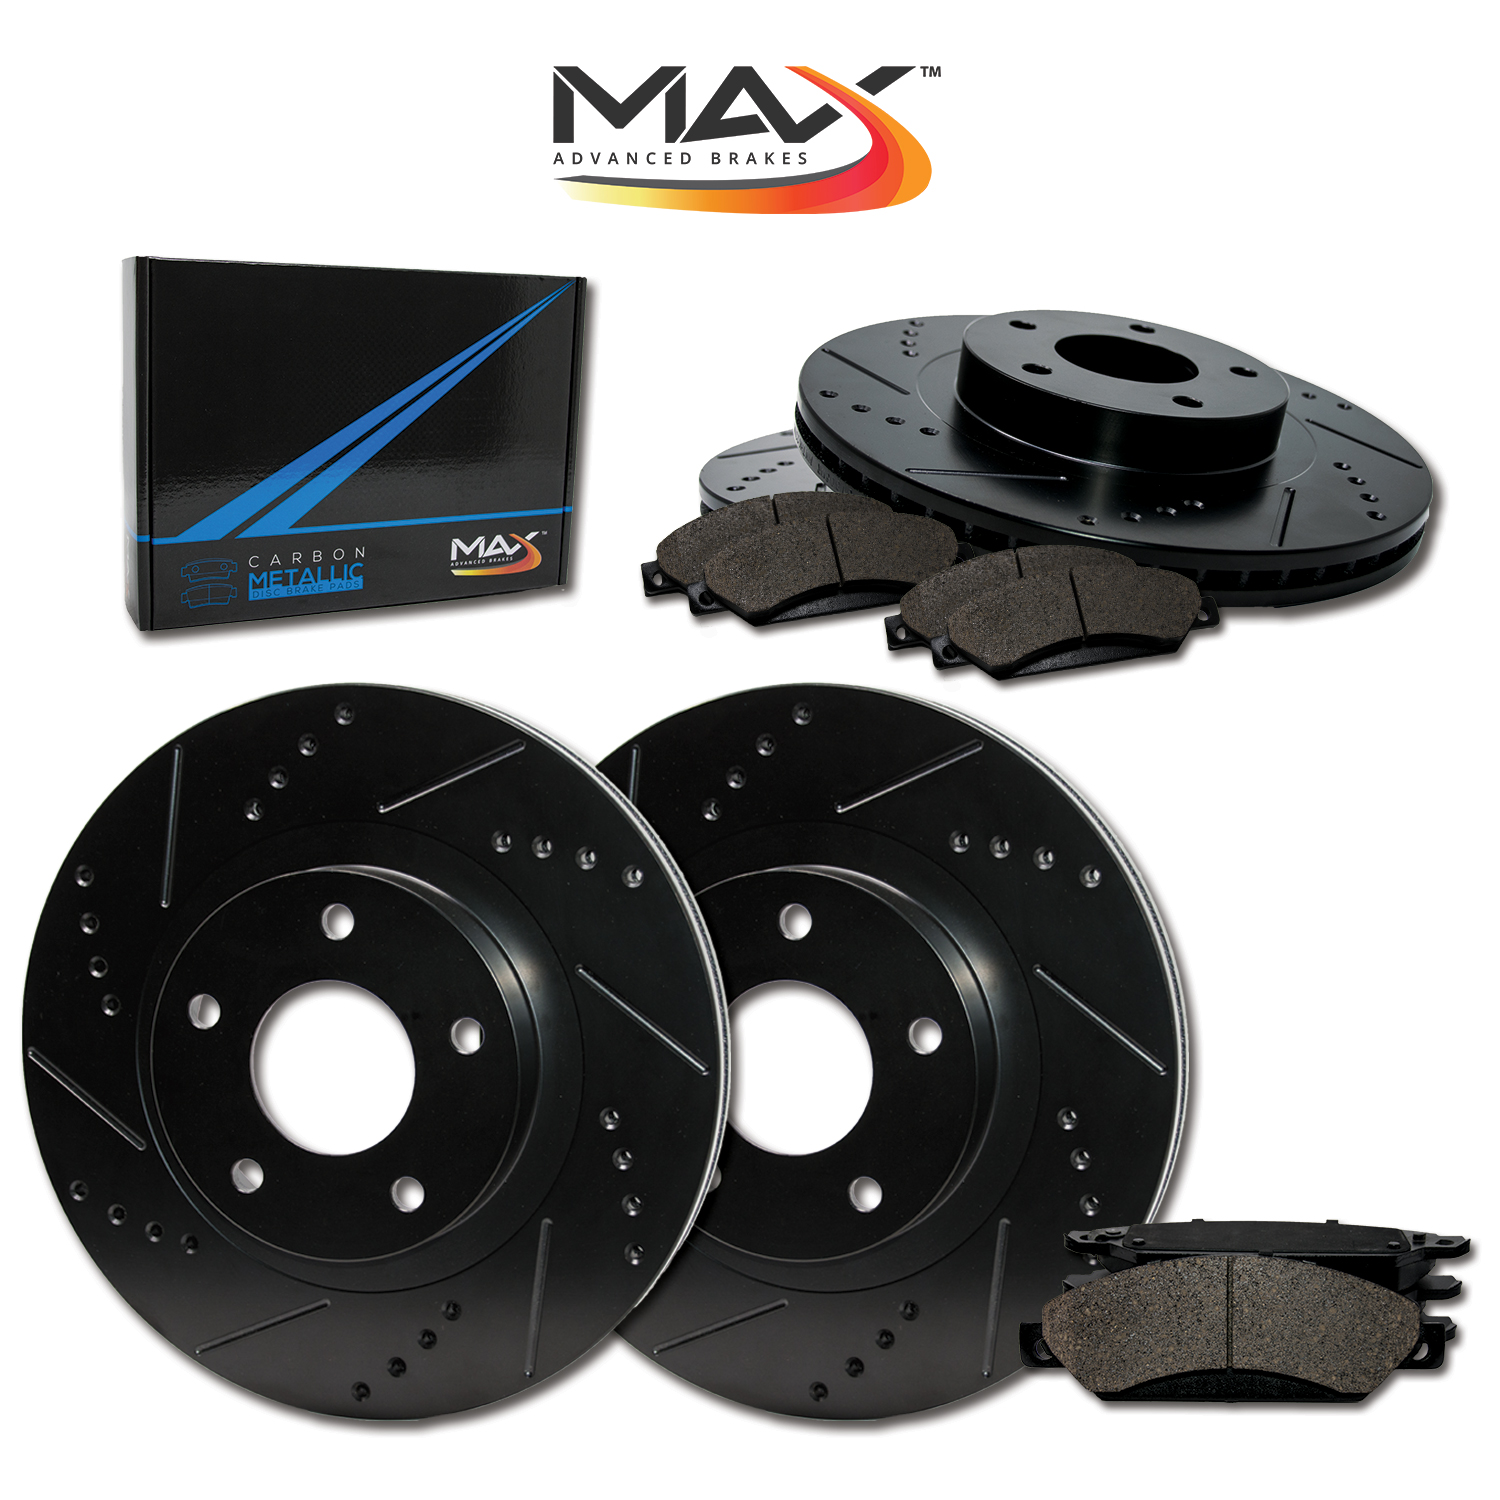 1994 1995 1996 1997 Mazda Miata MX5 Rotors Metallic Pads F+R OE Replacement